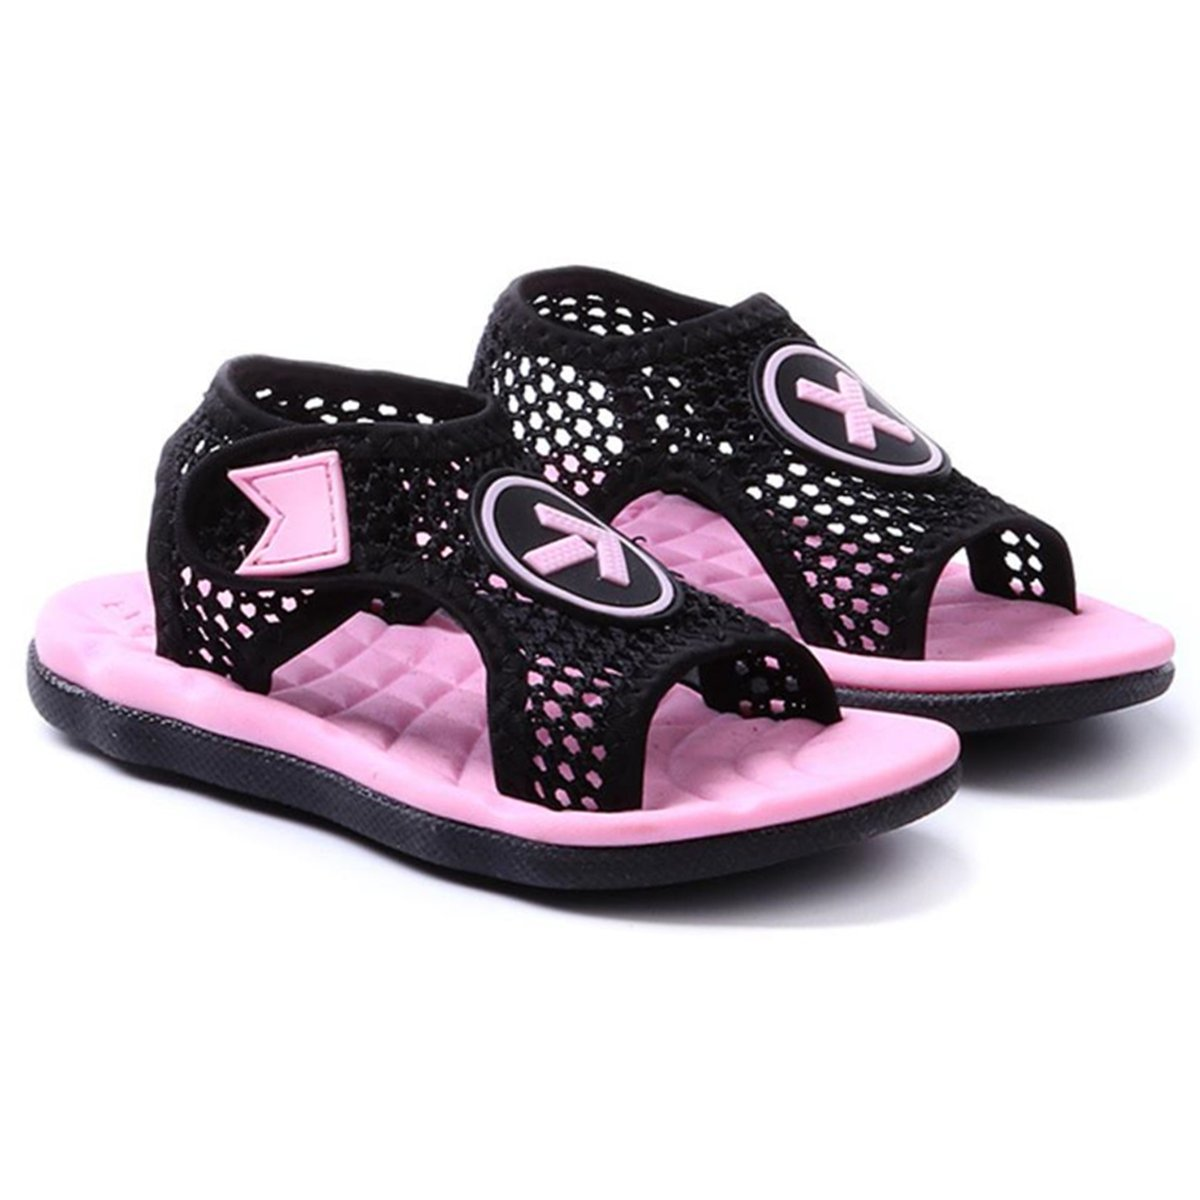 RVROVIC Kids Mesh Sports Sandals Aquatic Girls and Boys Water Shoe